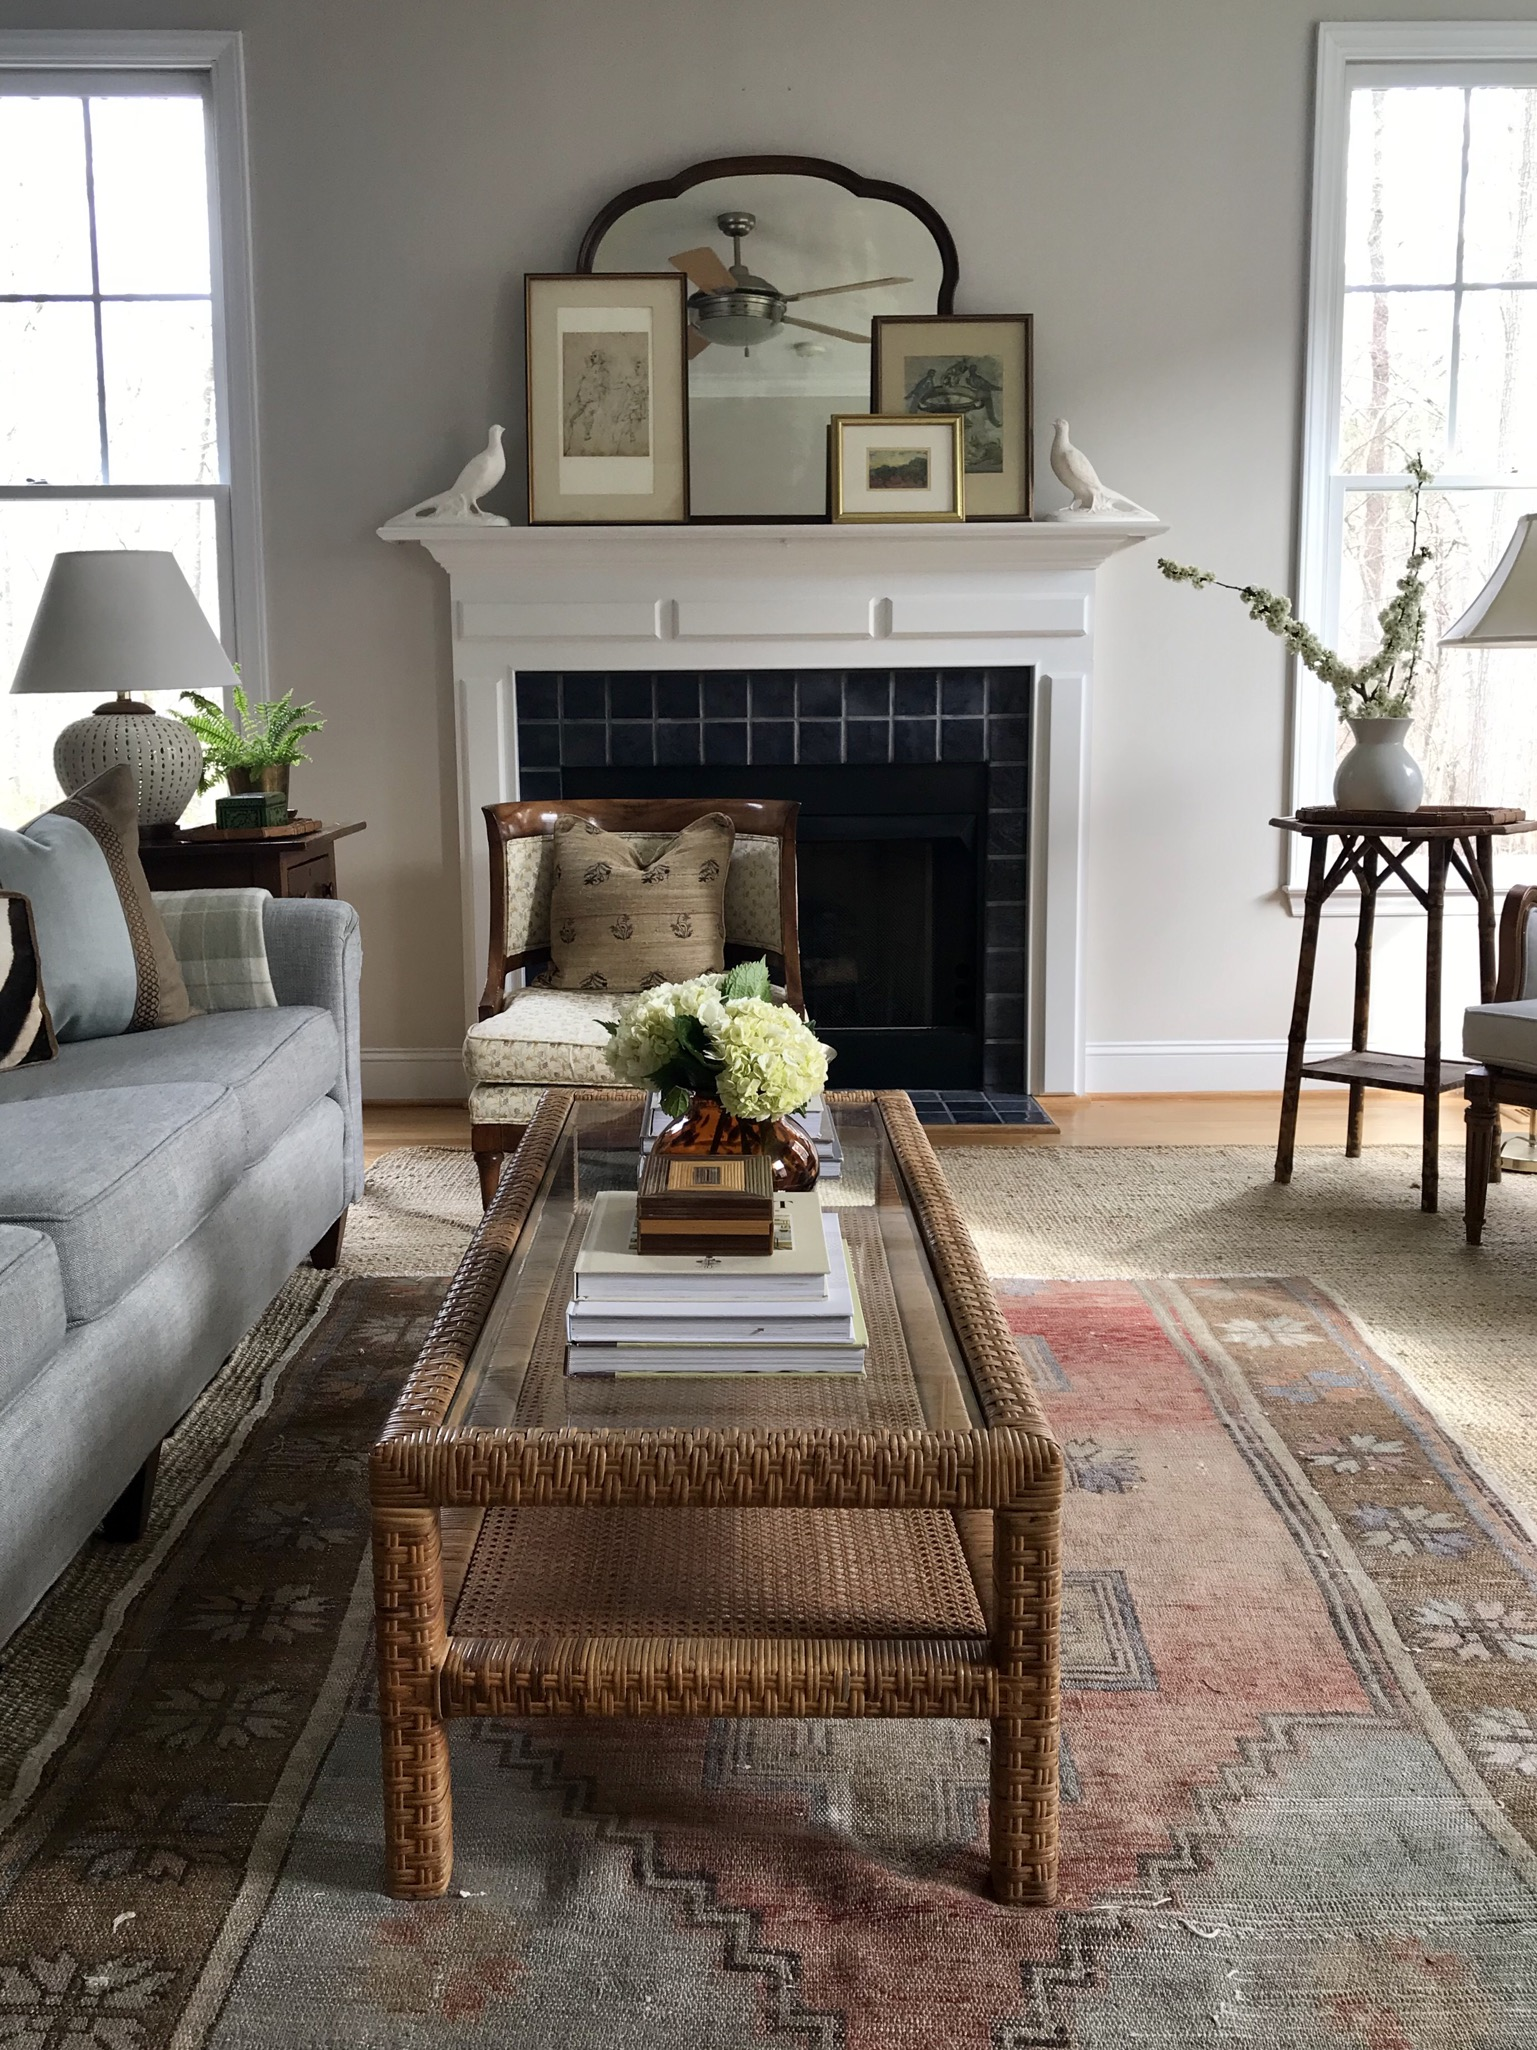 Alison Giese Interiors Soulful style.jpeg